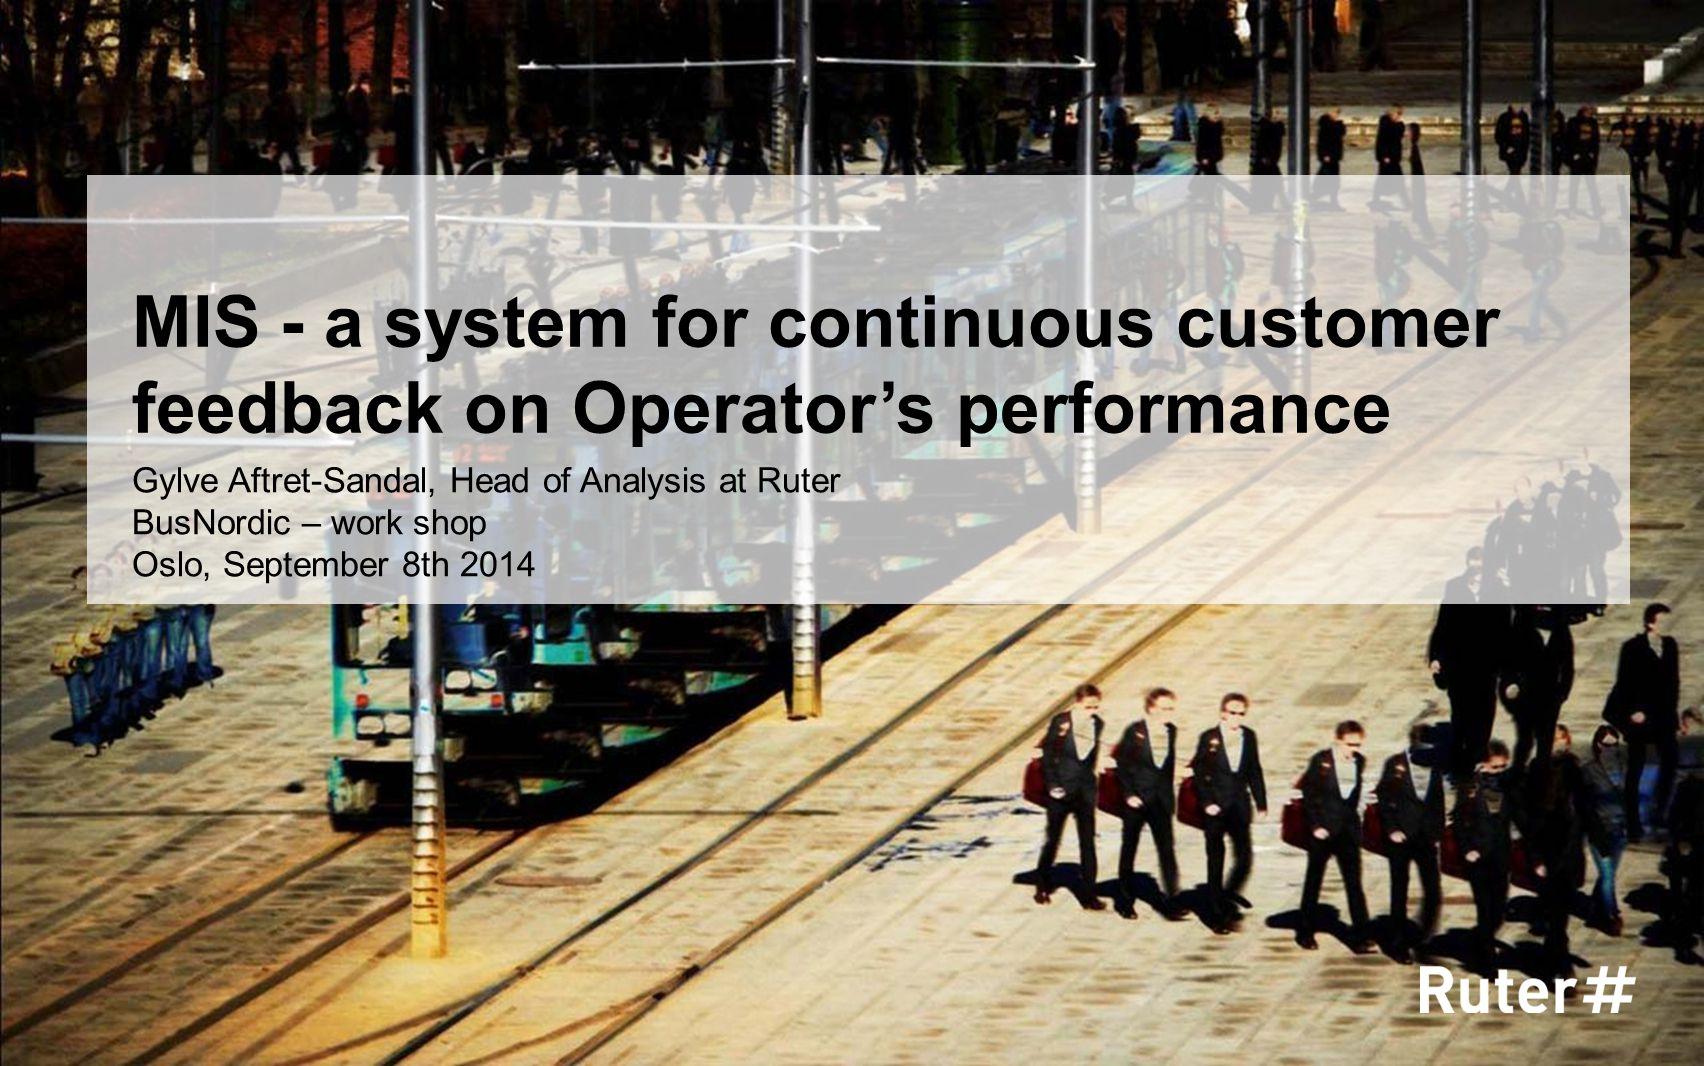 MIS - a system for continuous customer feedback on Operator's performance Gylve Aftret-Sandal, Head of Analysis at Ruter BusNordic – work shop Oslo, September 8th 2014